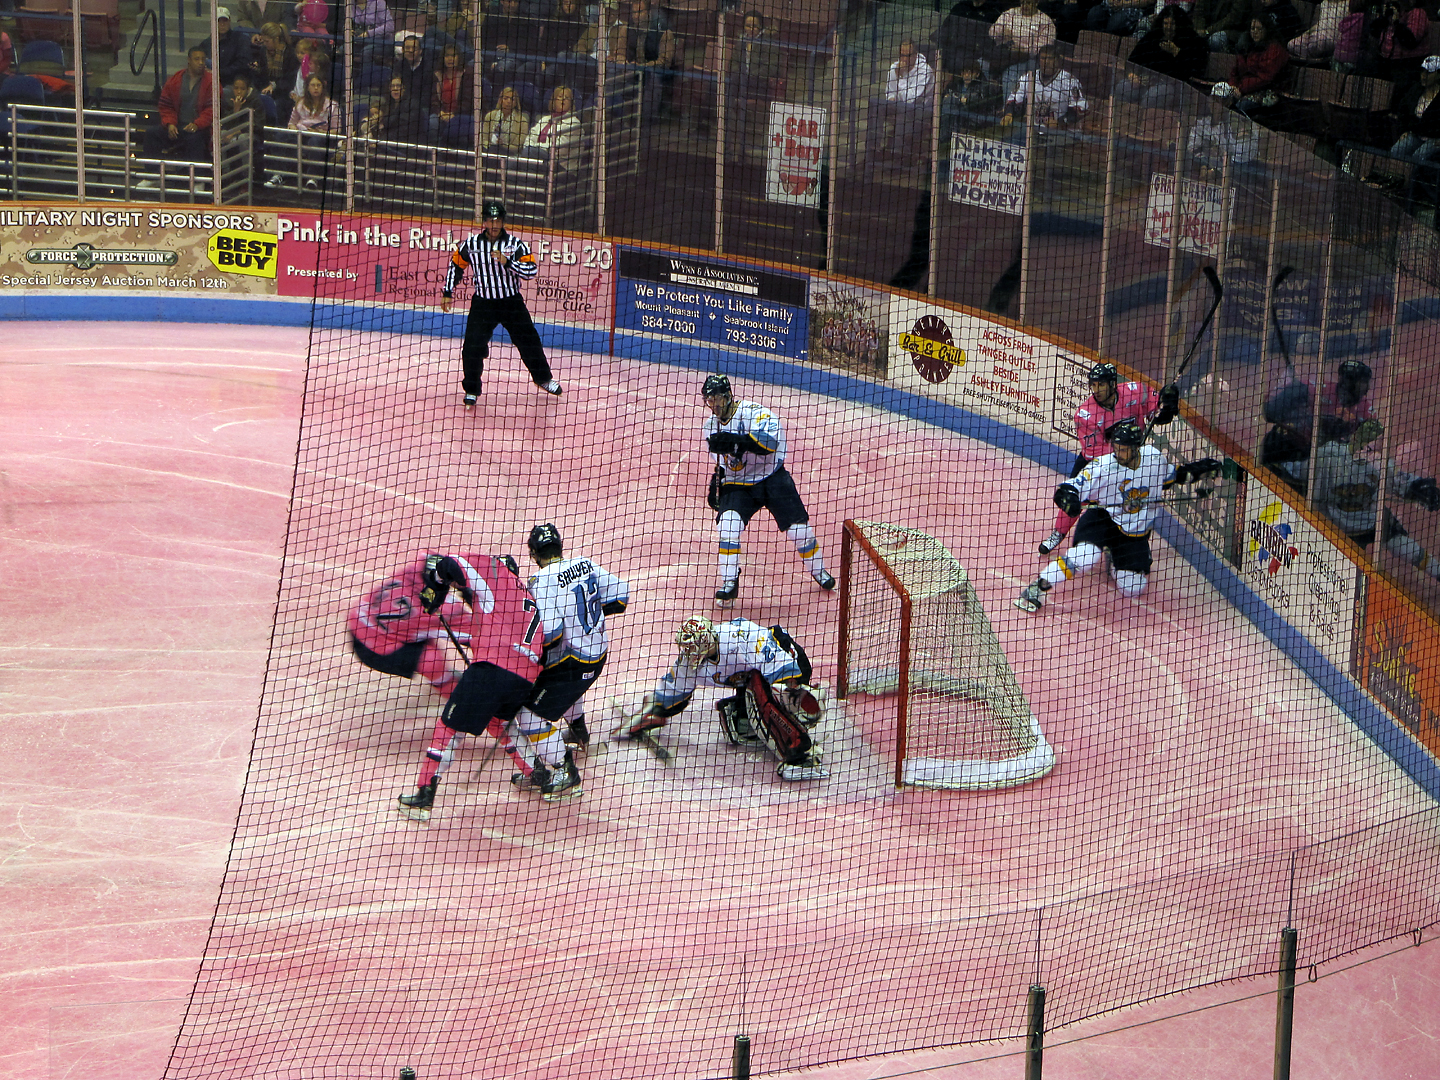 Pink-in-the-Rink.jpg